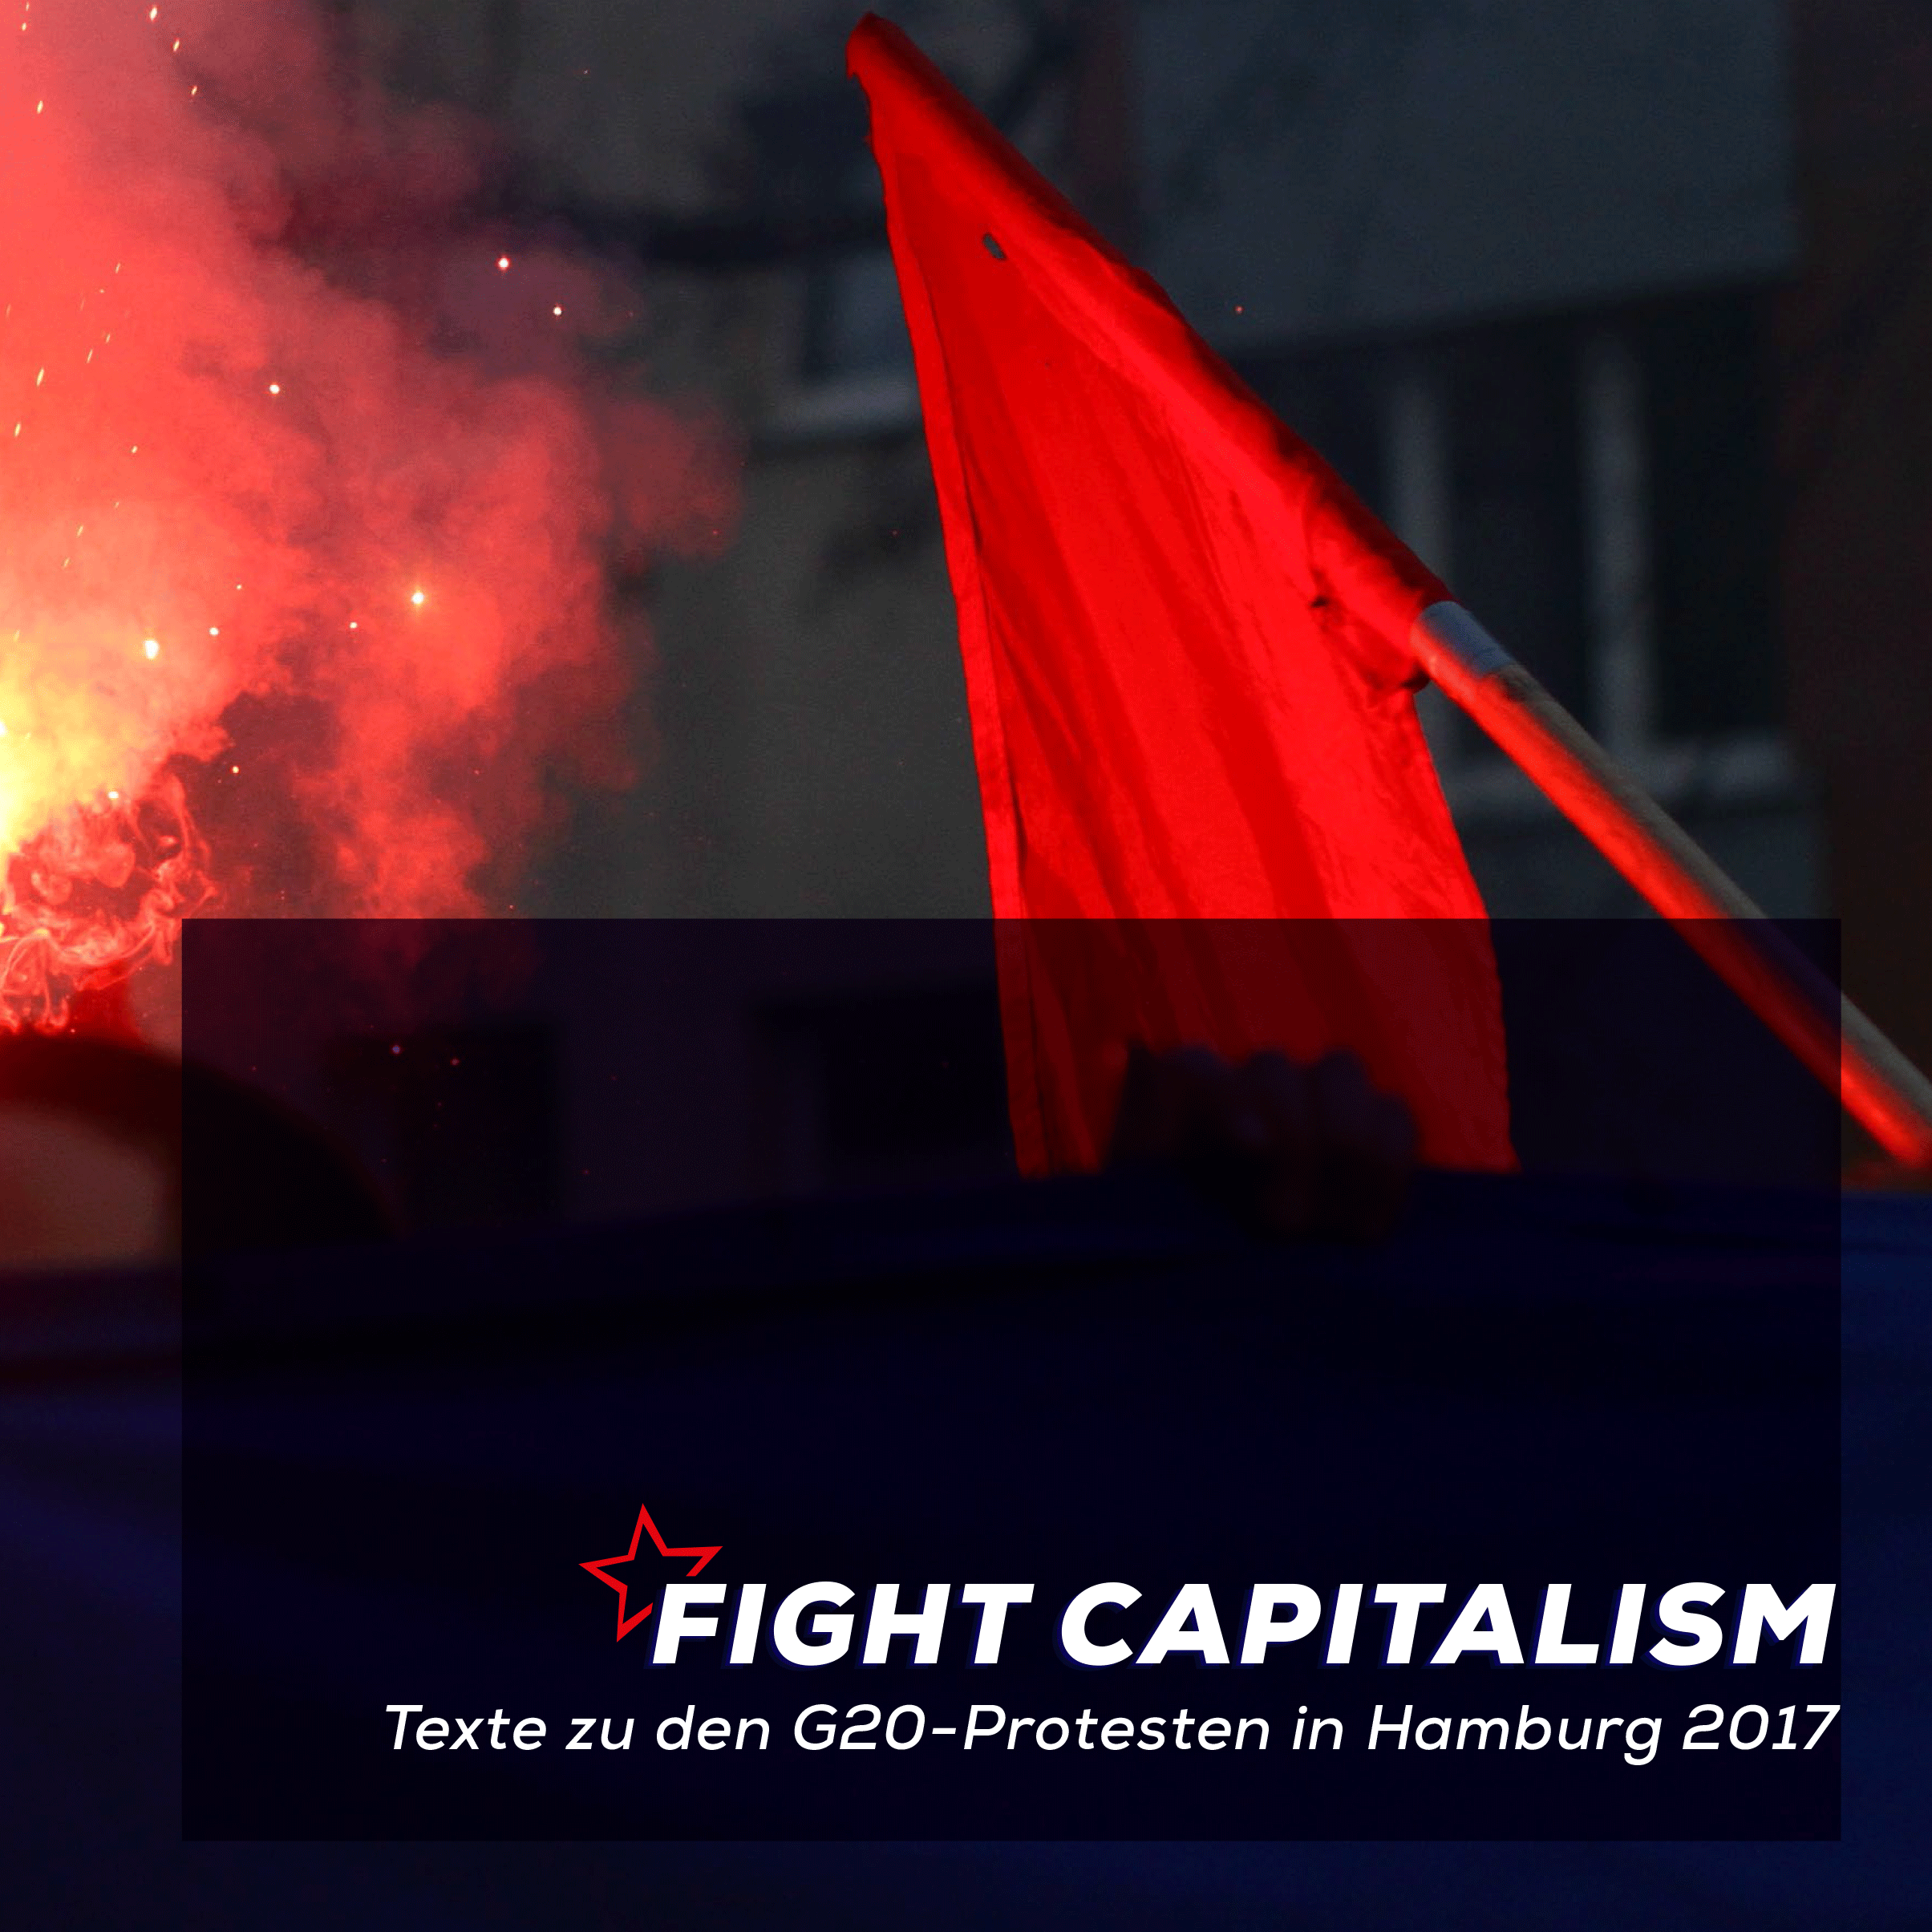 Fight Capitalism